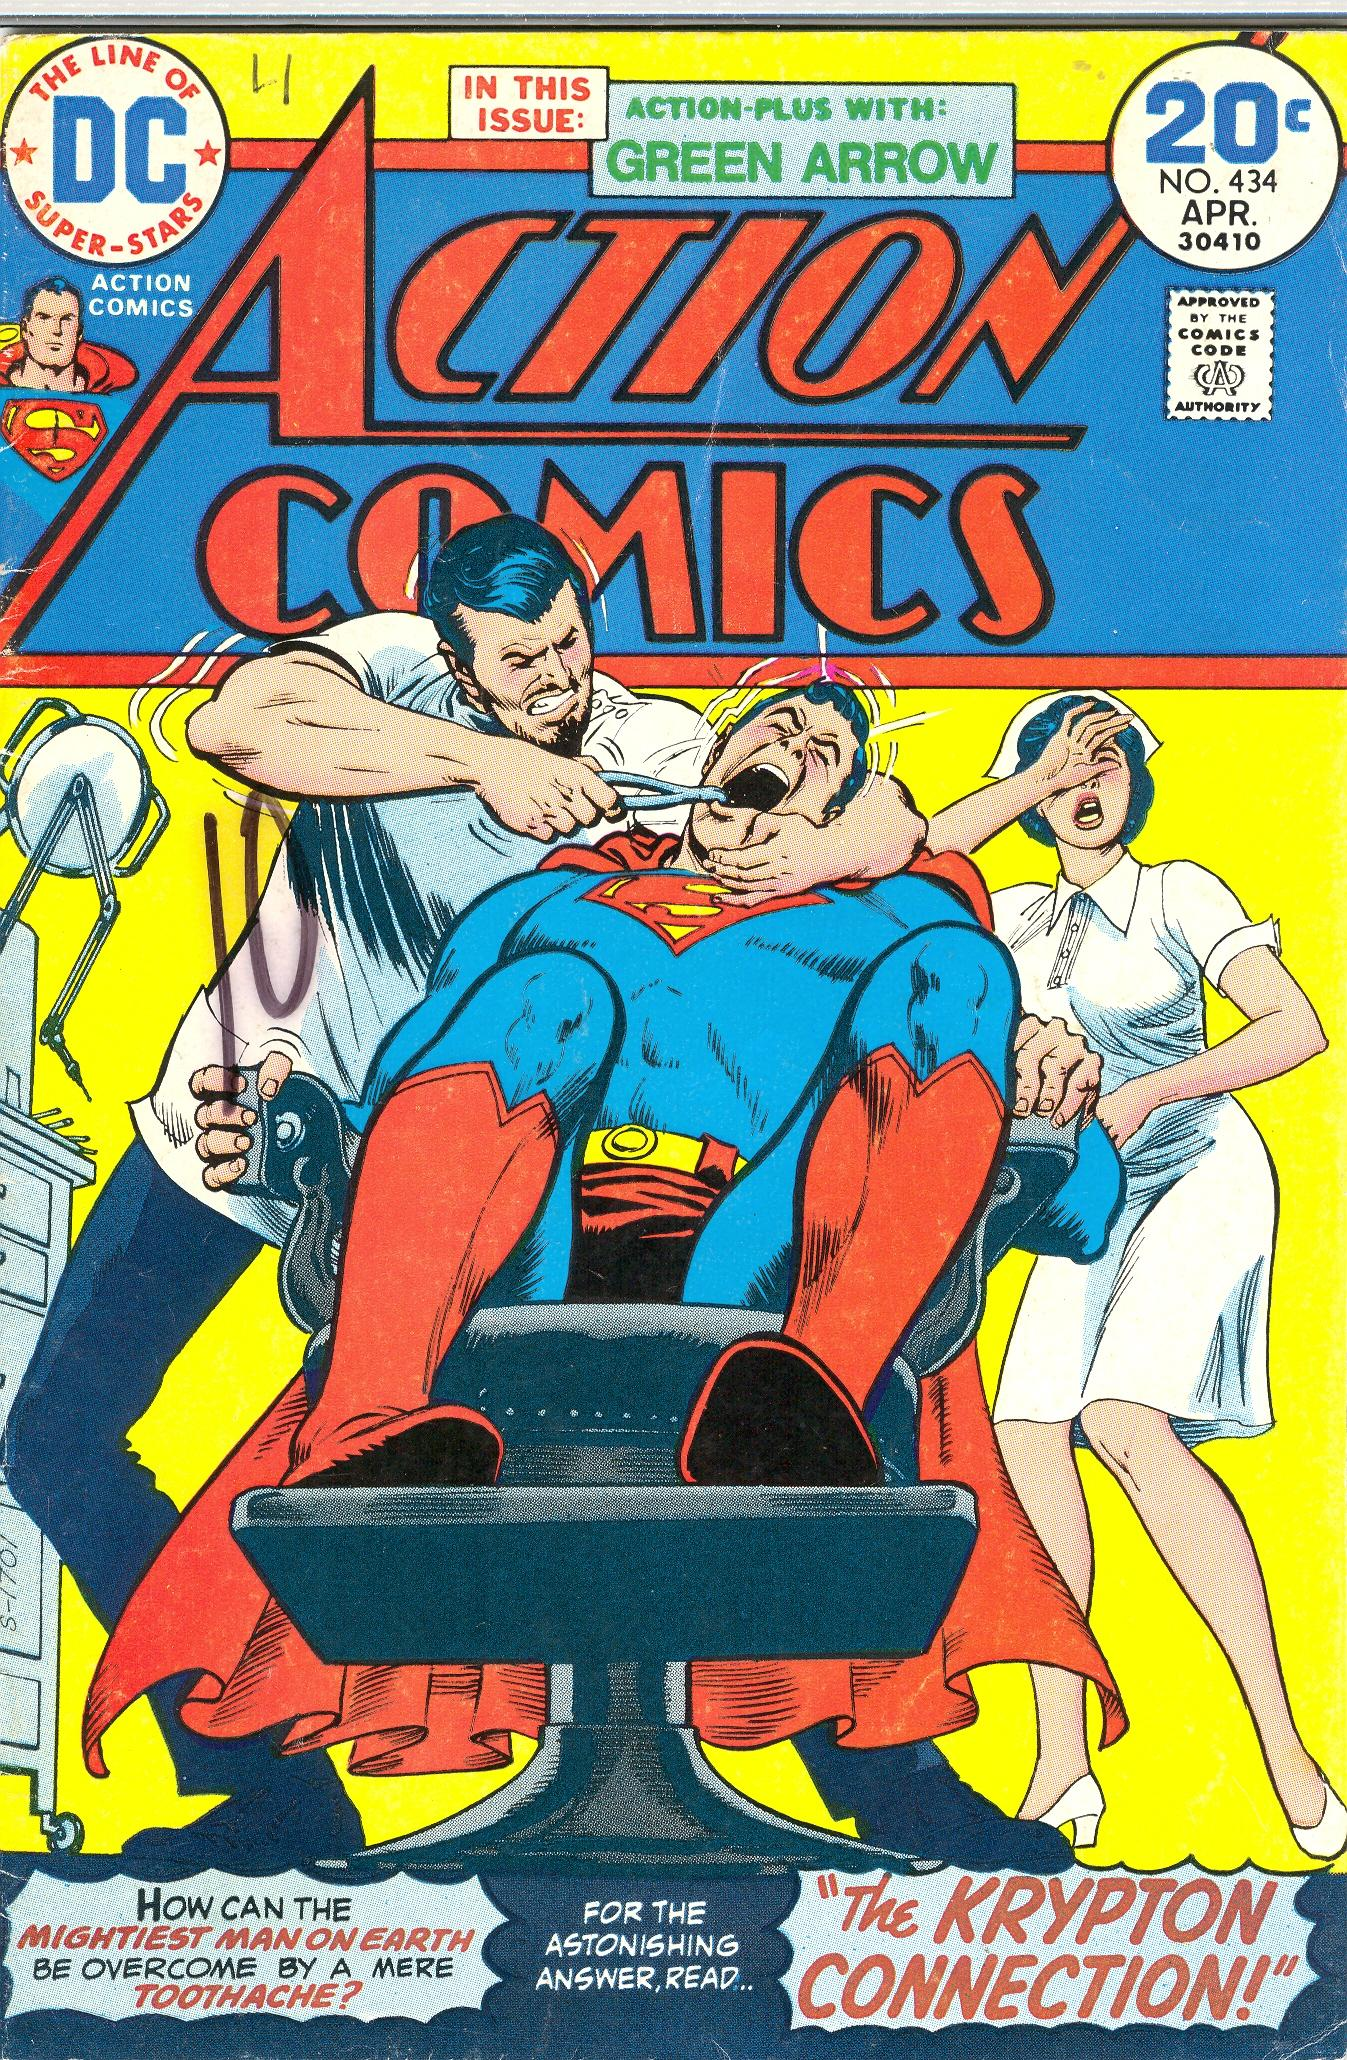 Money rules the world: 10 weird comic book covers